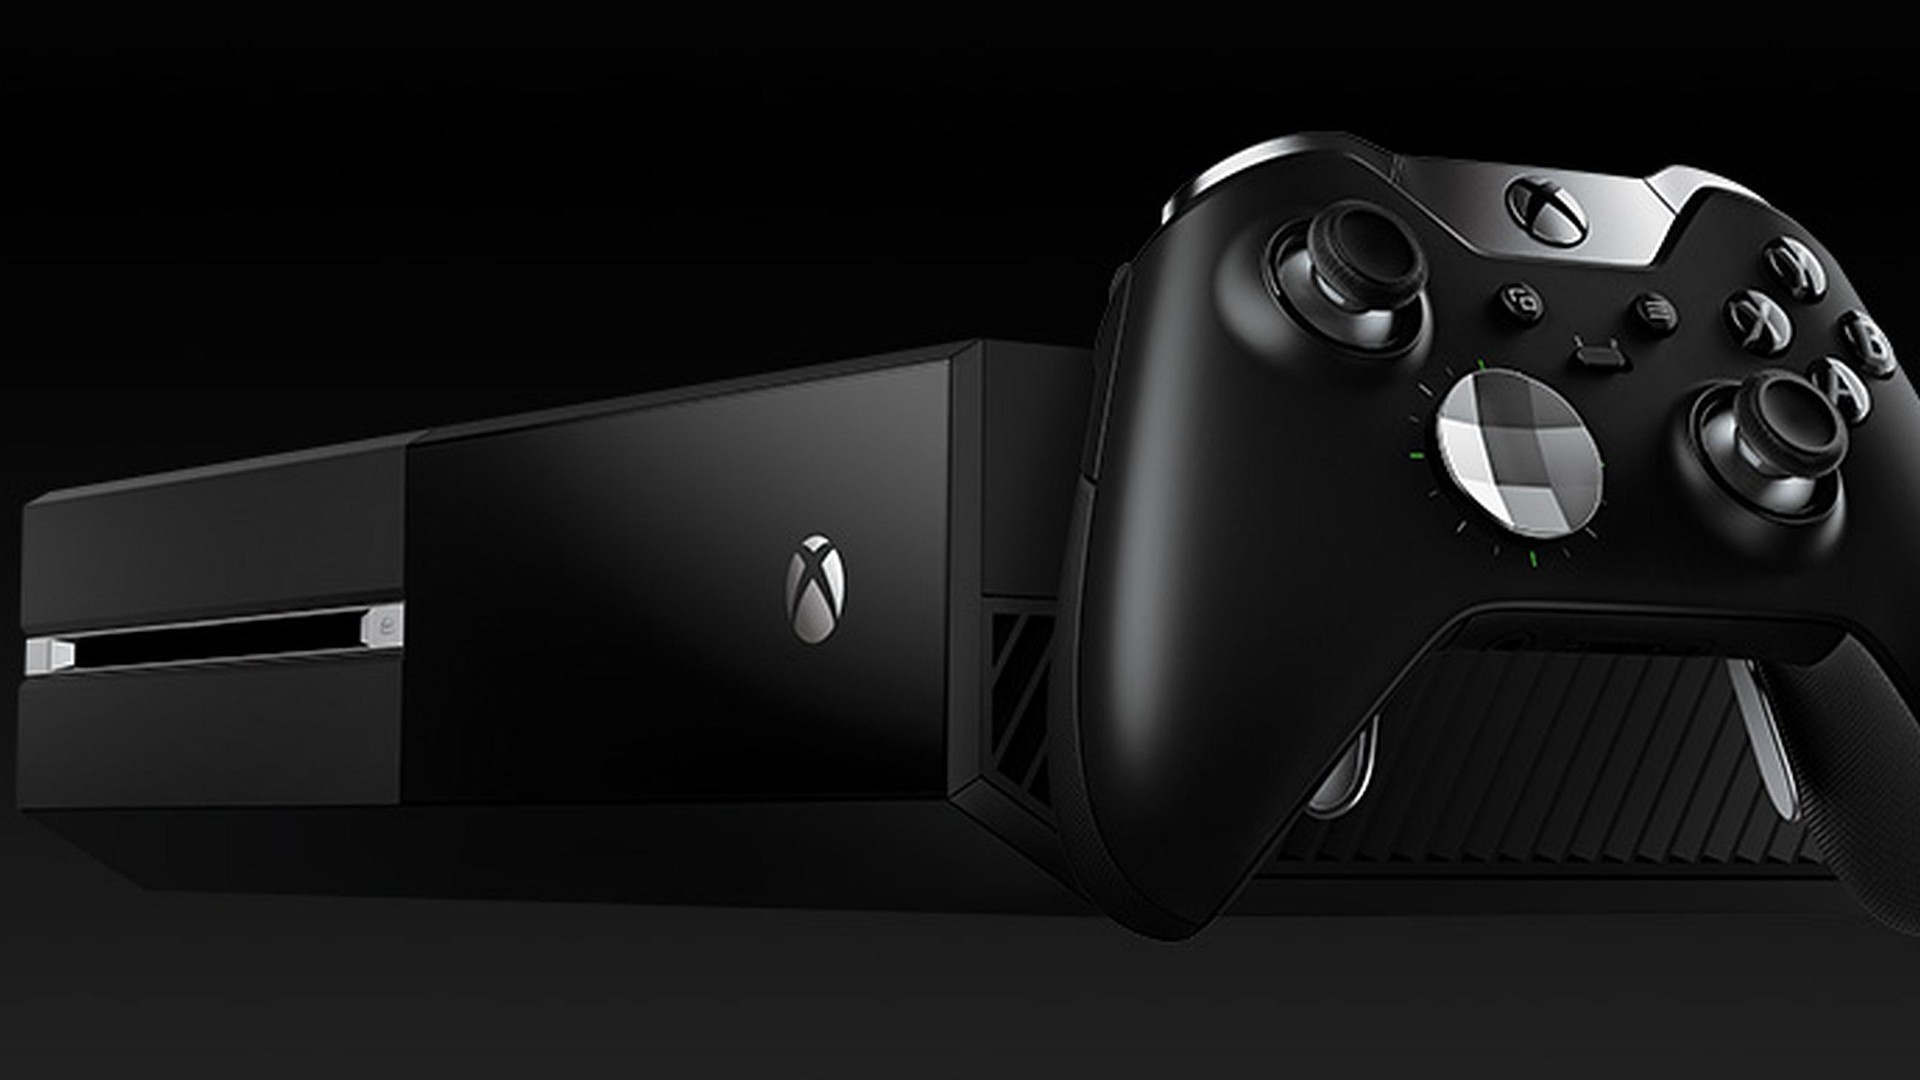 Microsoft Apparently Testing New Xbox Prototypes xbox one elite console